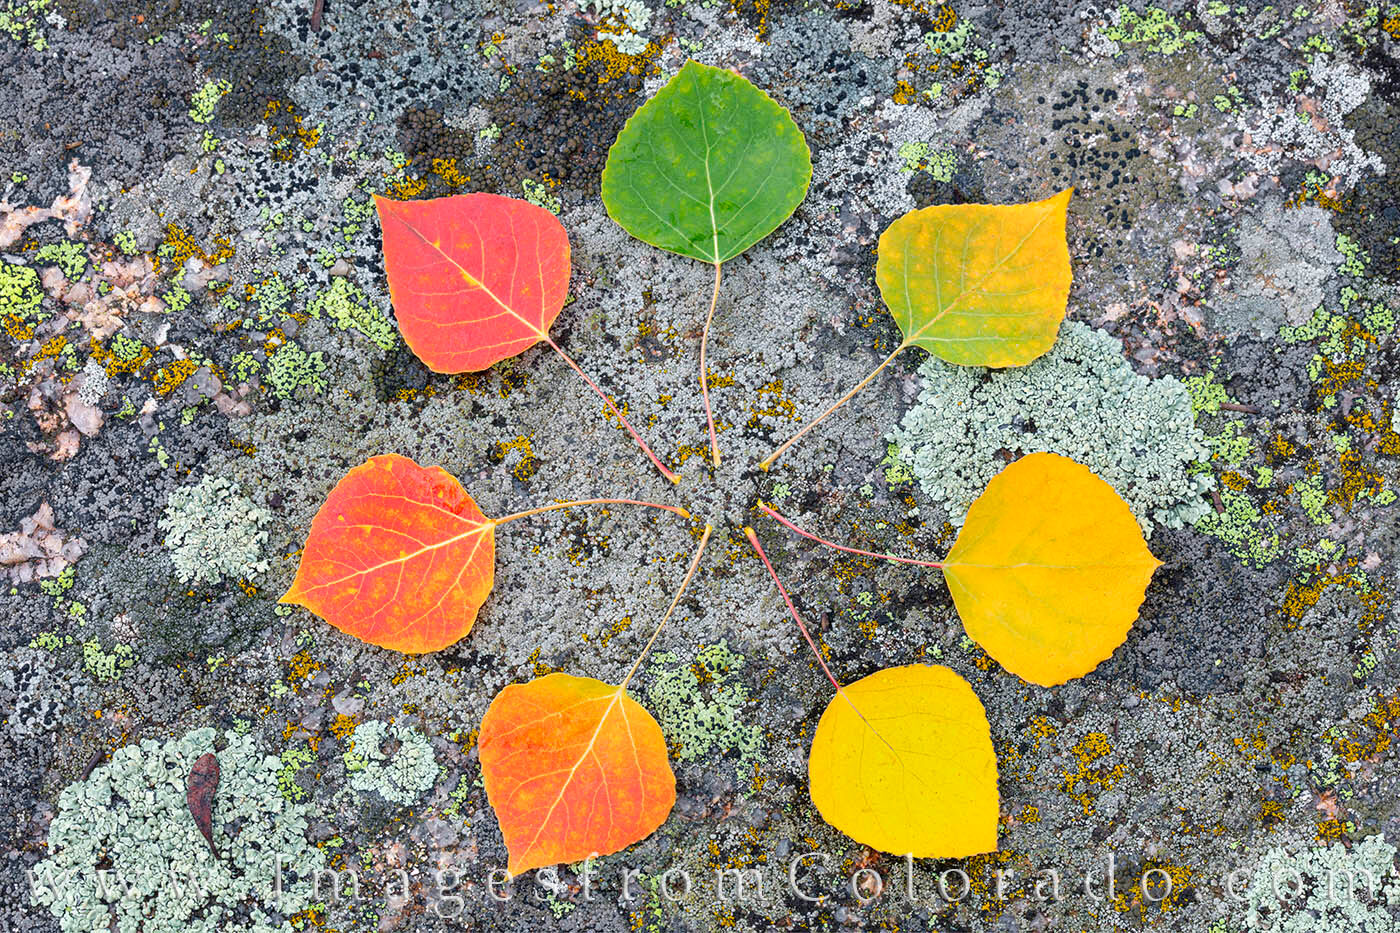 A circle of aspen leaves in Autumn show the colors of the season.